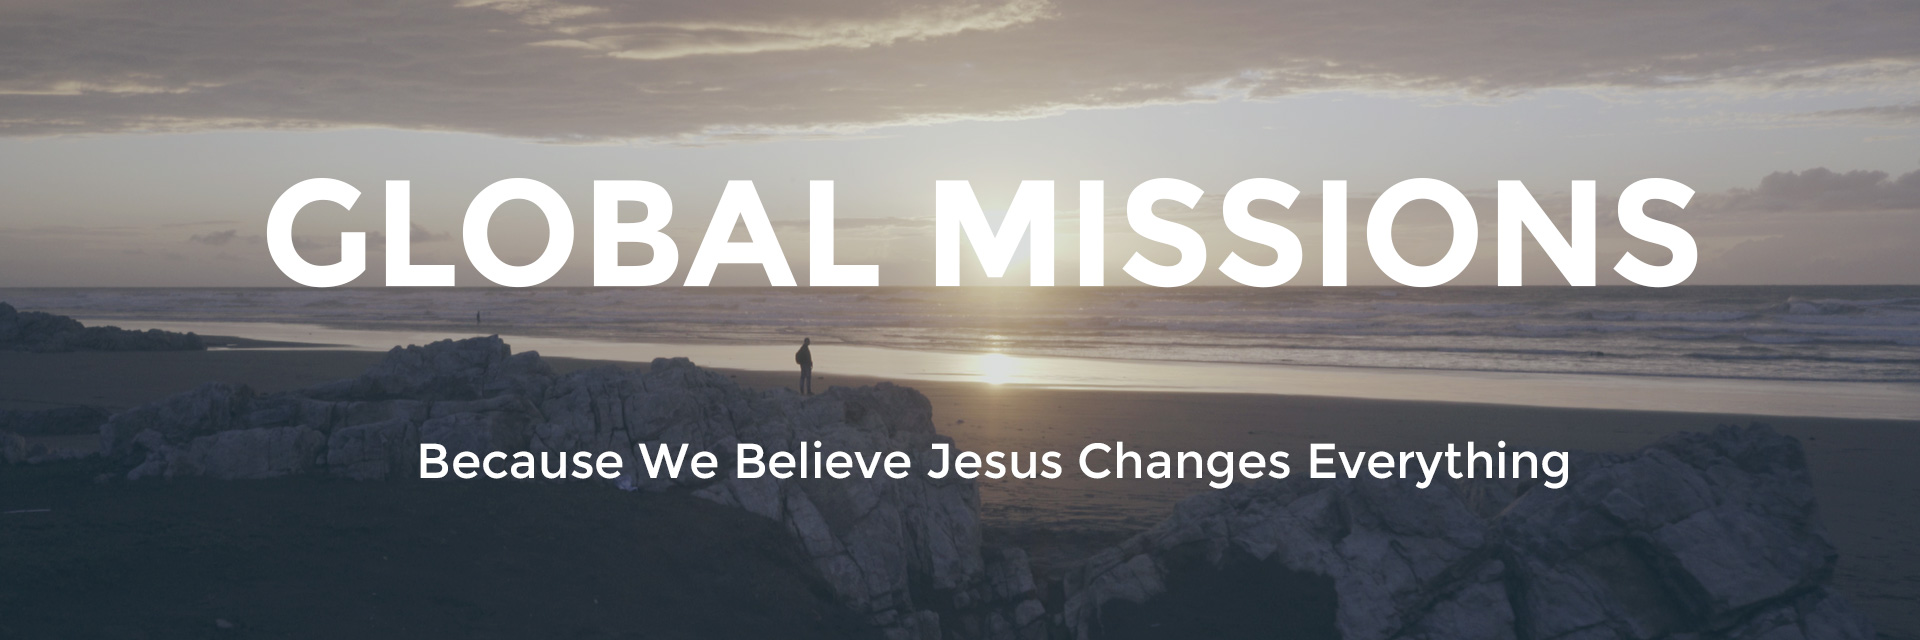 Global Missions: Because we believe Jesus changes everything.